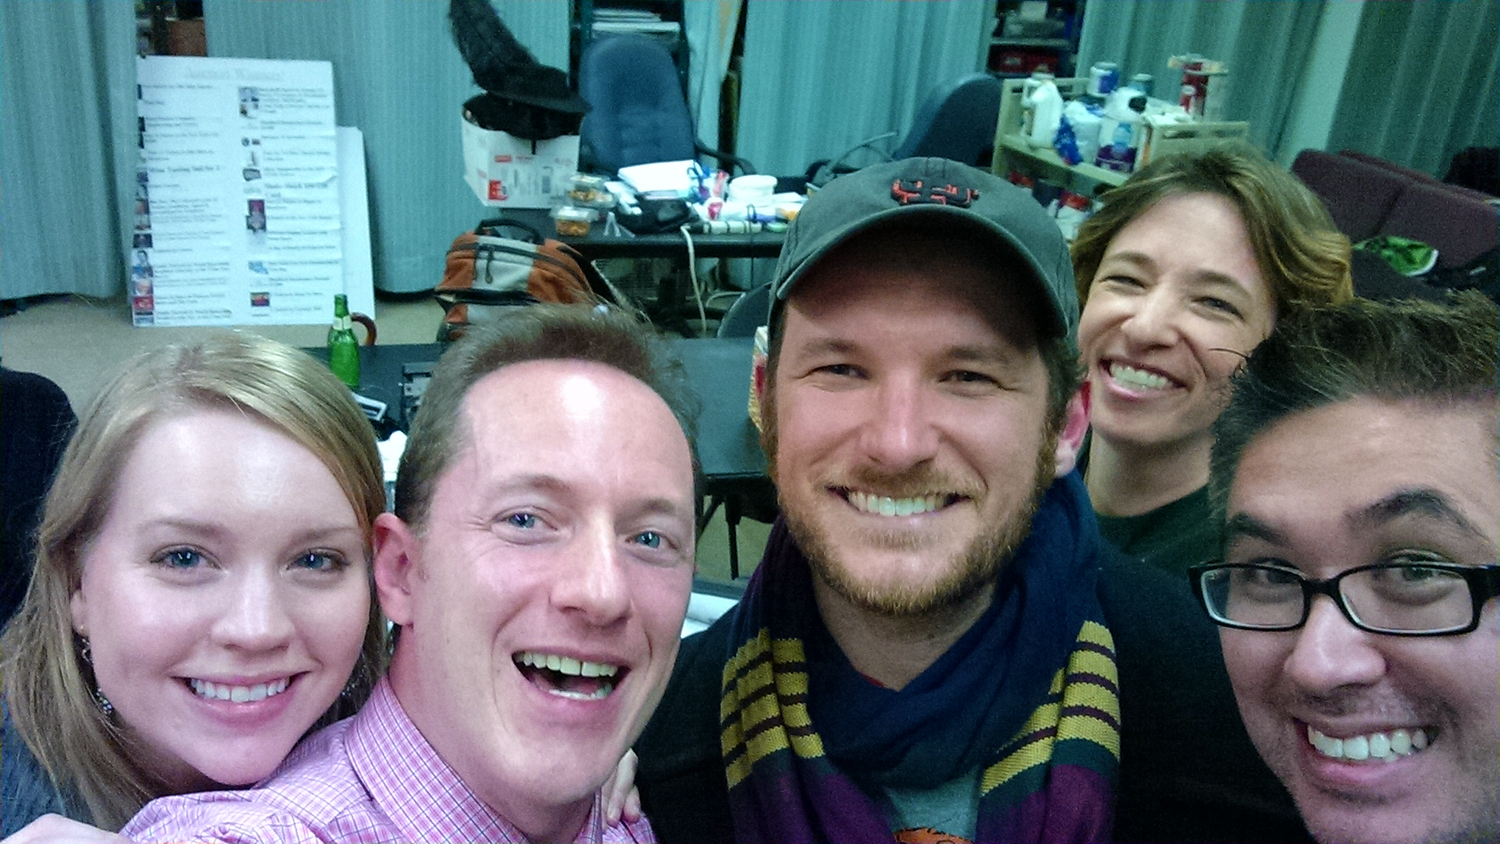 Backstage at TUNE IN TIME (the musical theatre game show), with (from l. to r.)     Britt Bonney  , Tom,   Drew Gasparini  ,   Amy Engelhardt   and   Erik Przytulski  .